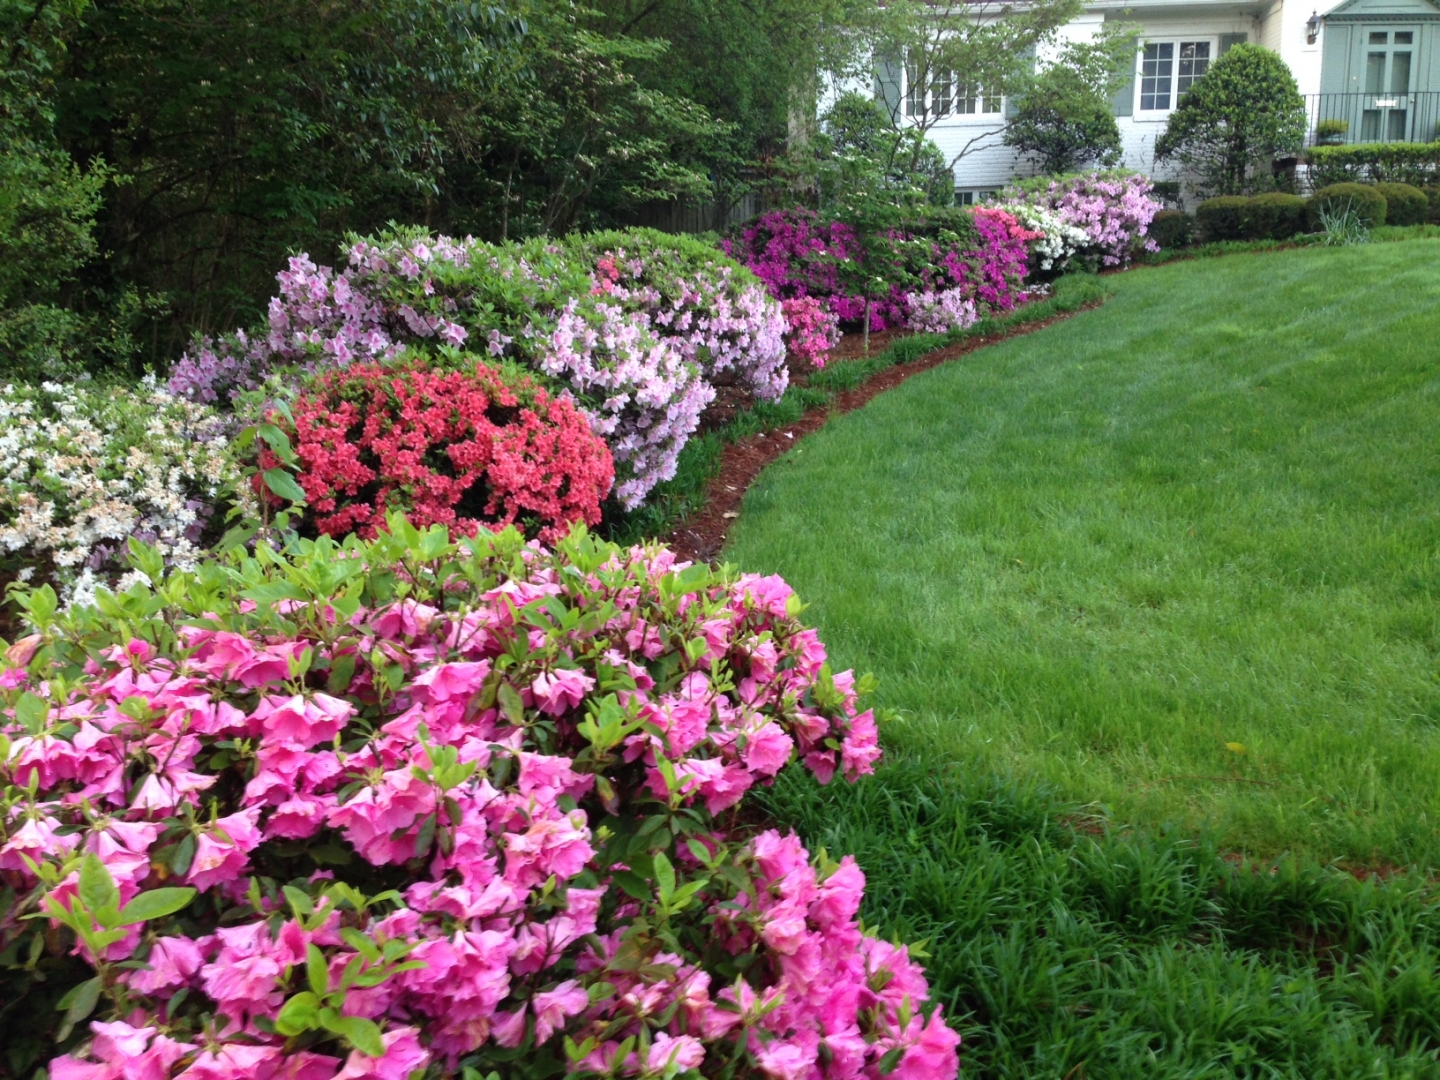 Lawns can be beautiful, but they make for poor habitat. Photo Mary Newsom